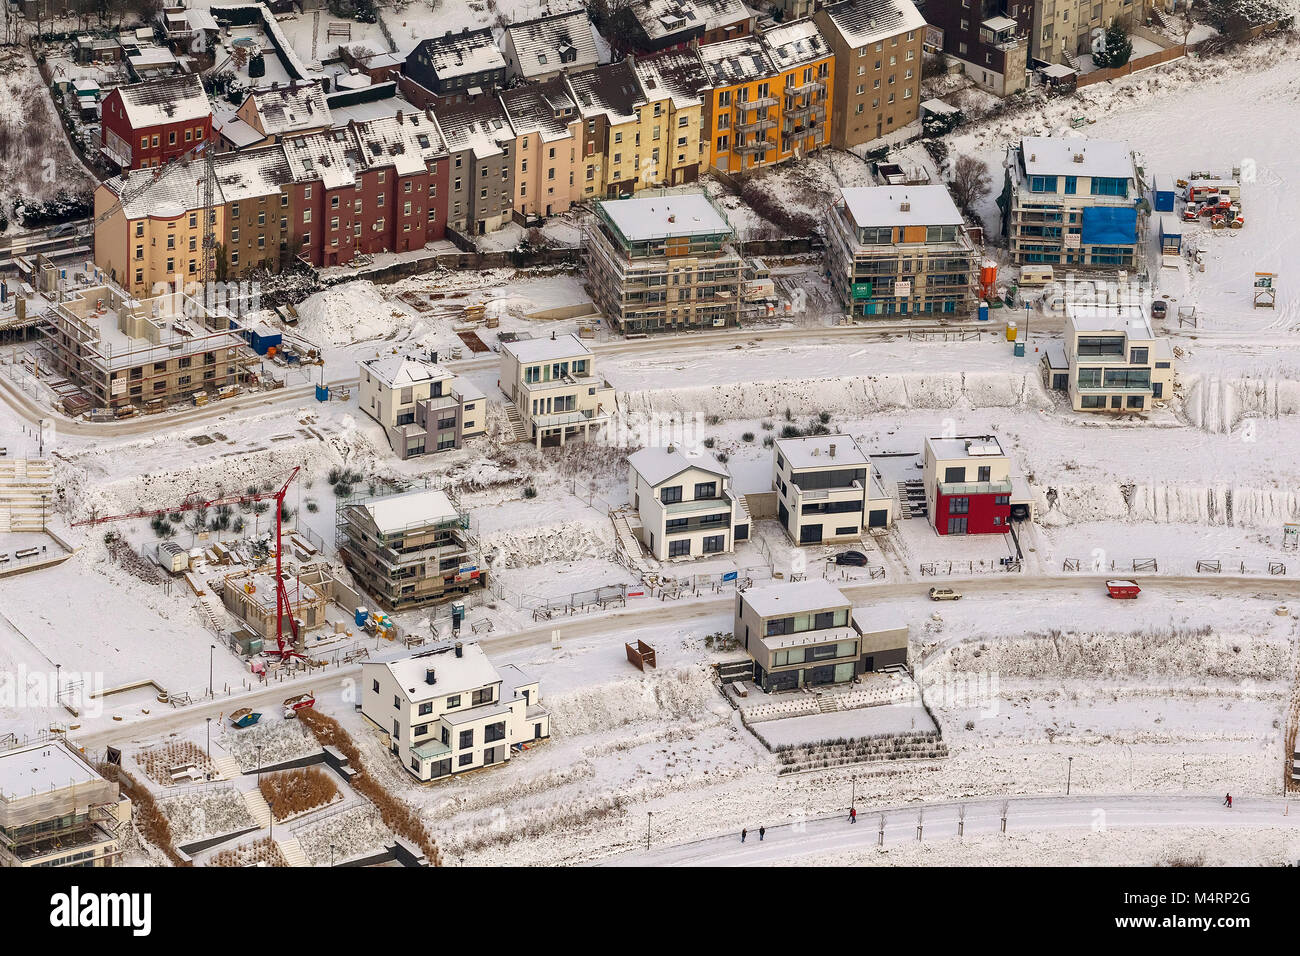 Aerial view, lakefront, detached houses, Emscher, residential development on the lake, Phoenixsee, former steelworks - Stock Image